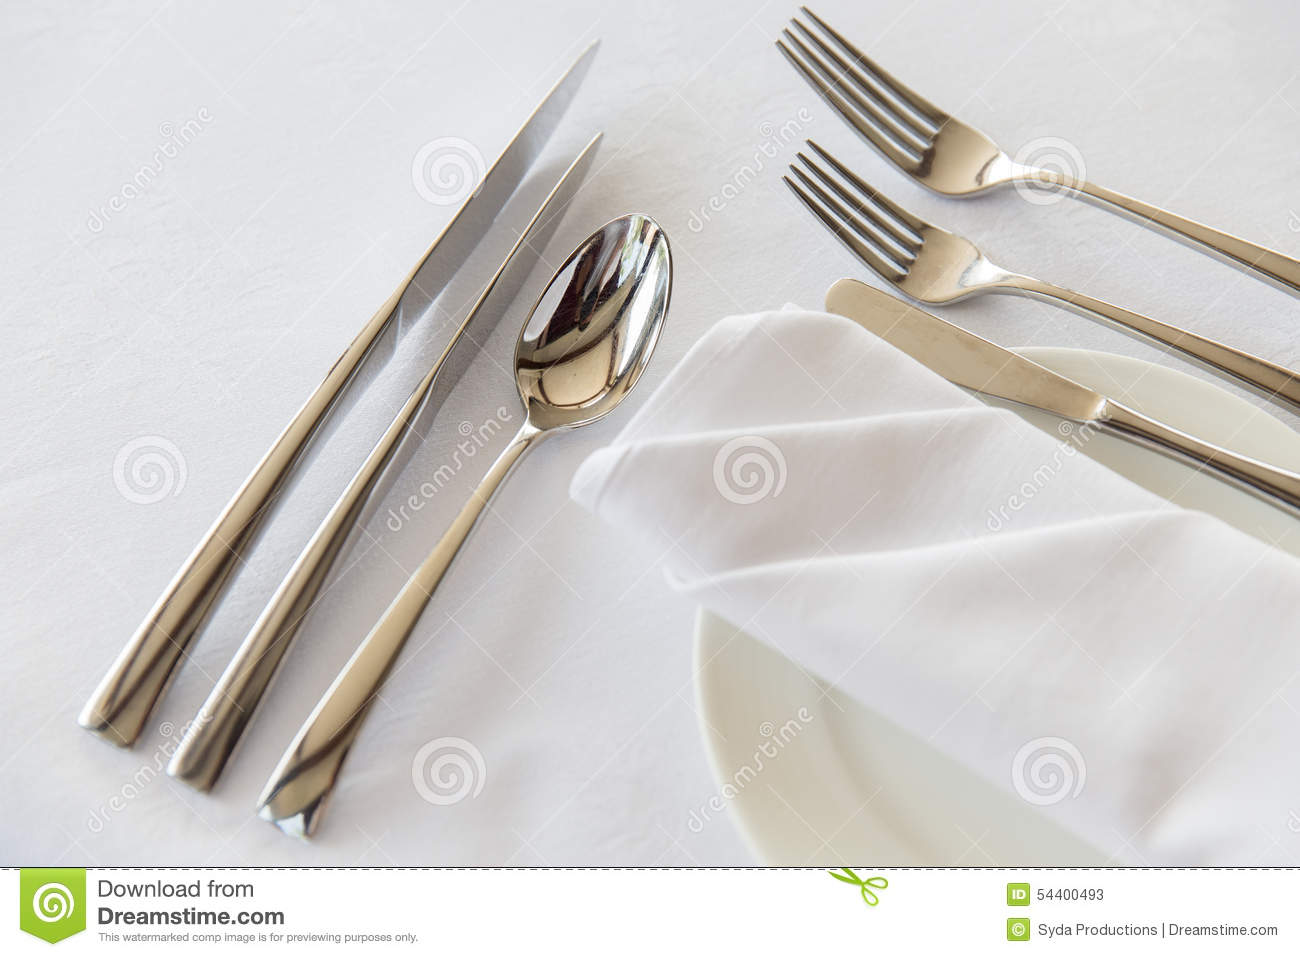 Close Up Of Cutlery Set On Table Stock Photo Image 54400493 : close up cutlery set table setting silverware eating concept wrapped napkin plate restaurant 54400493 from dreamstime.com size 1300 x 957 jpeg 100kB